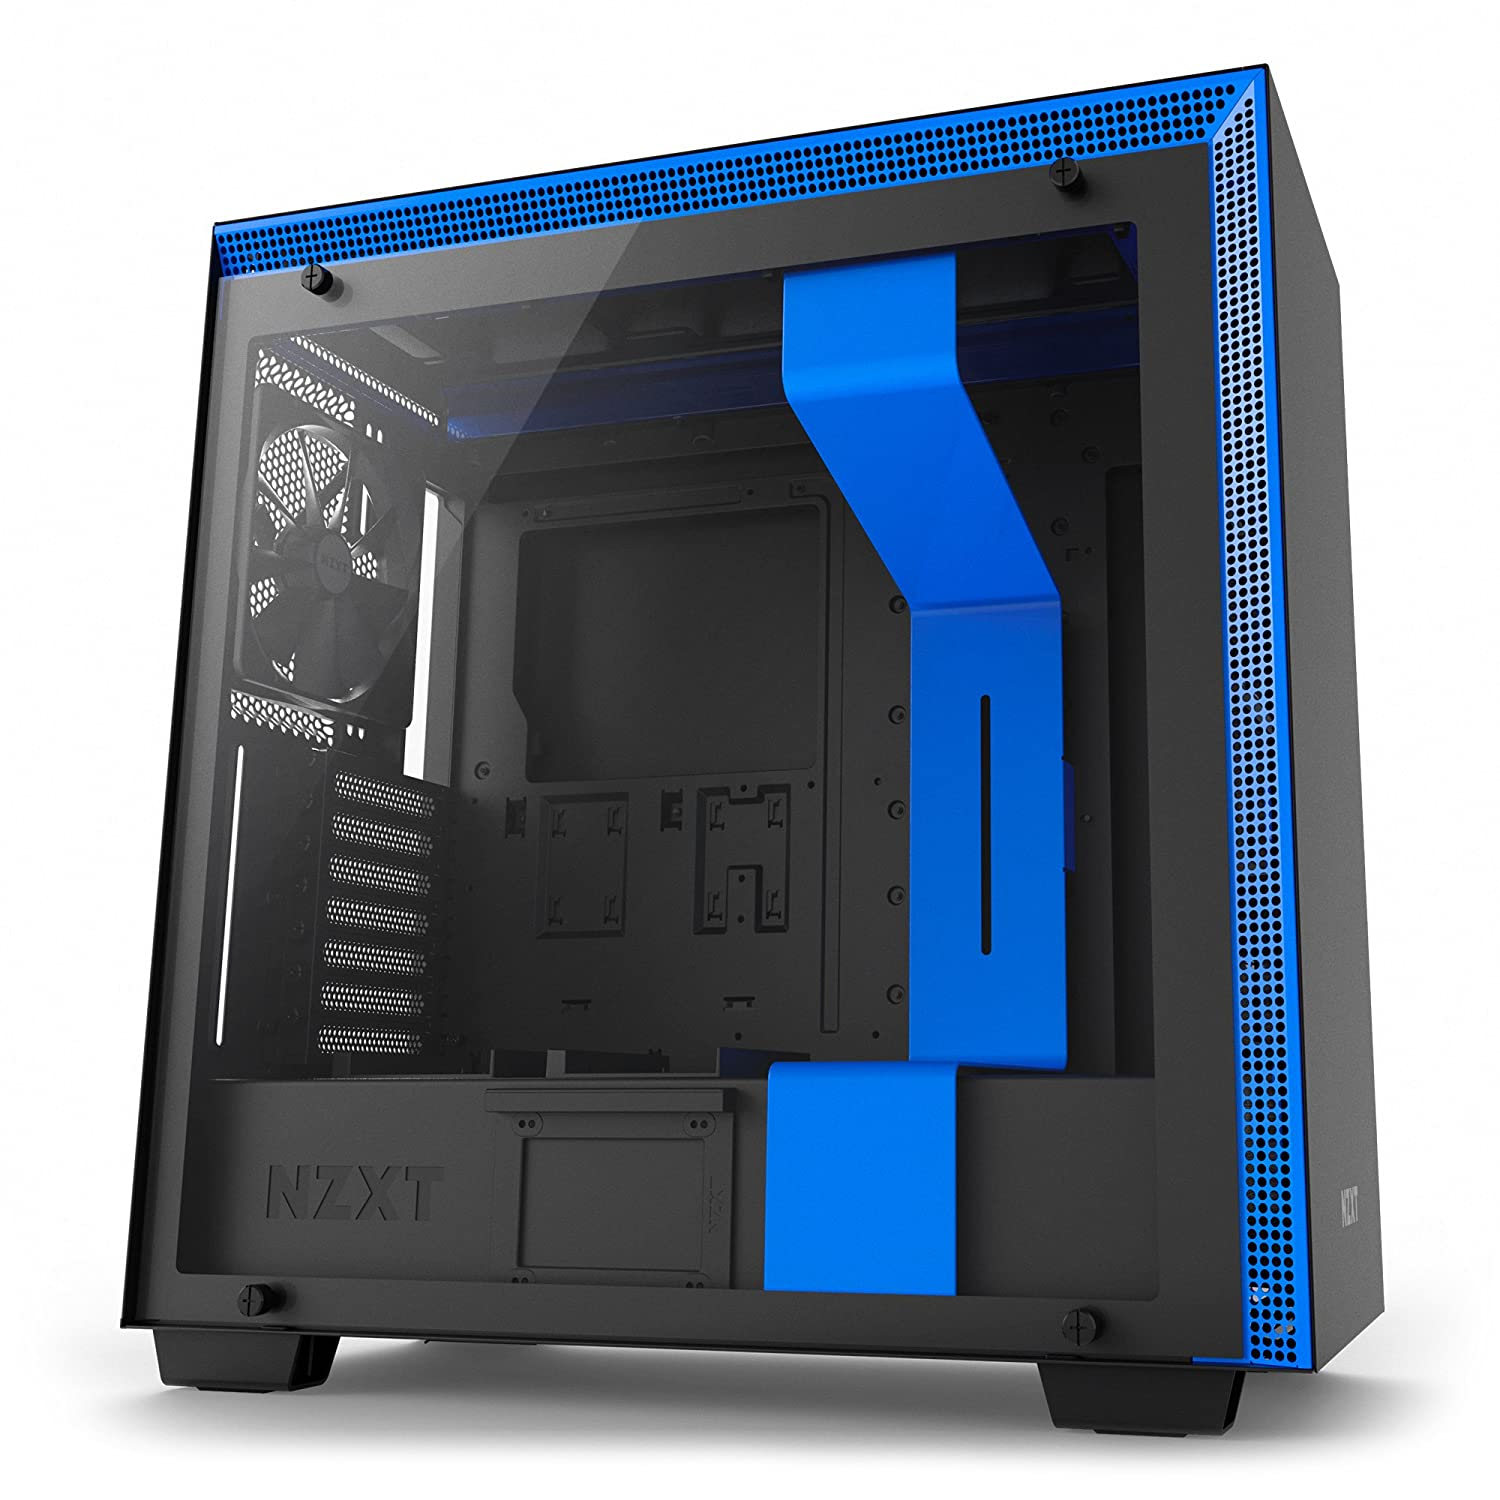 NZXT H500 - Compact ATX PC Gaming Case - Tempered Glass - Enhanced Cable Management - Water-Cooling Ready - Black